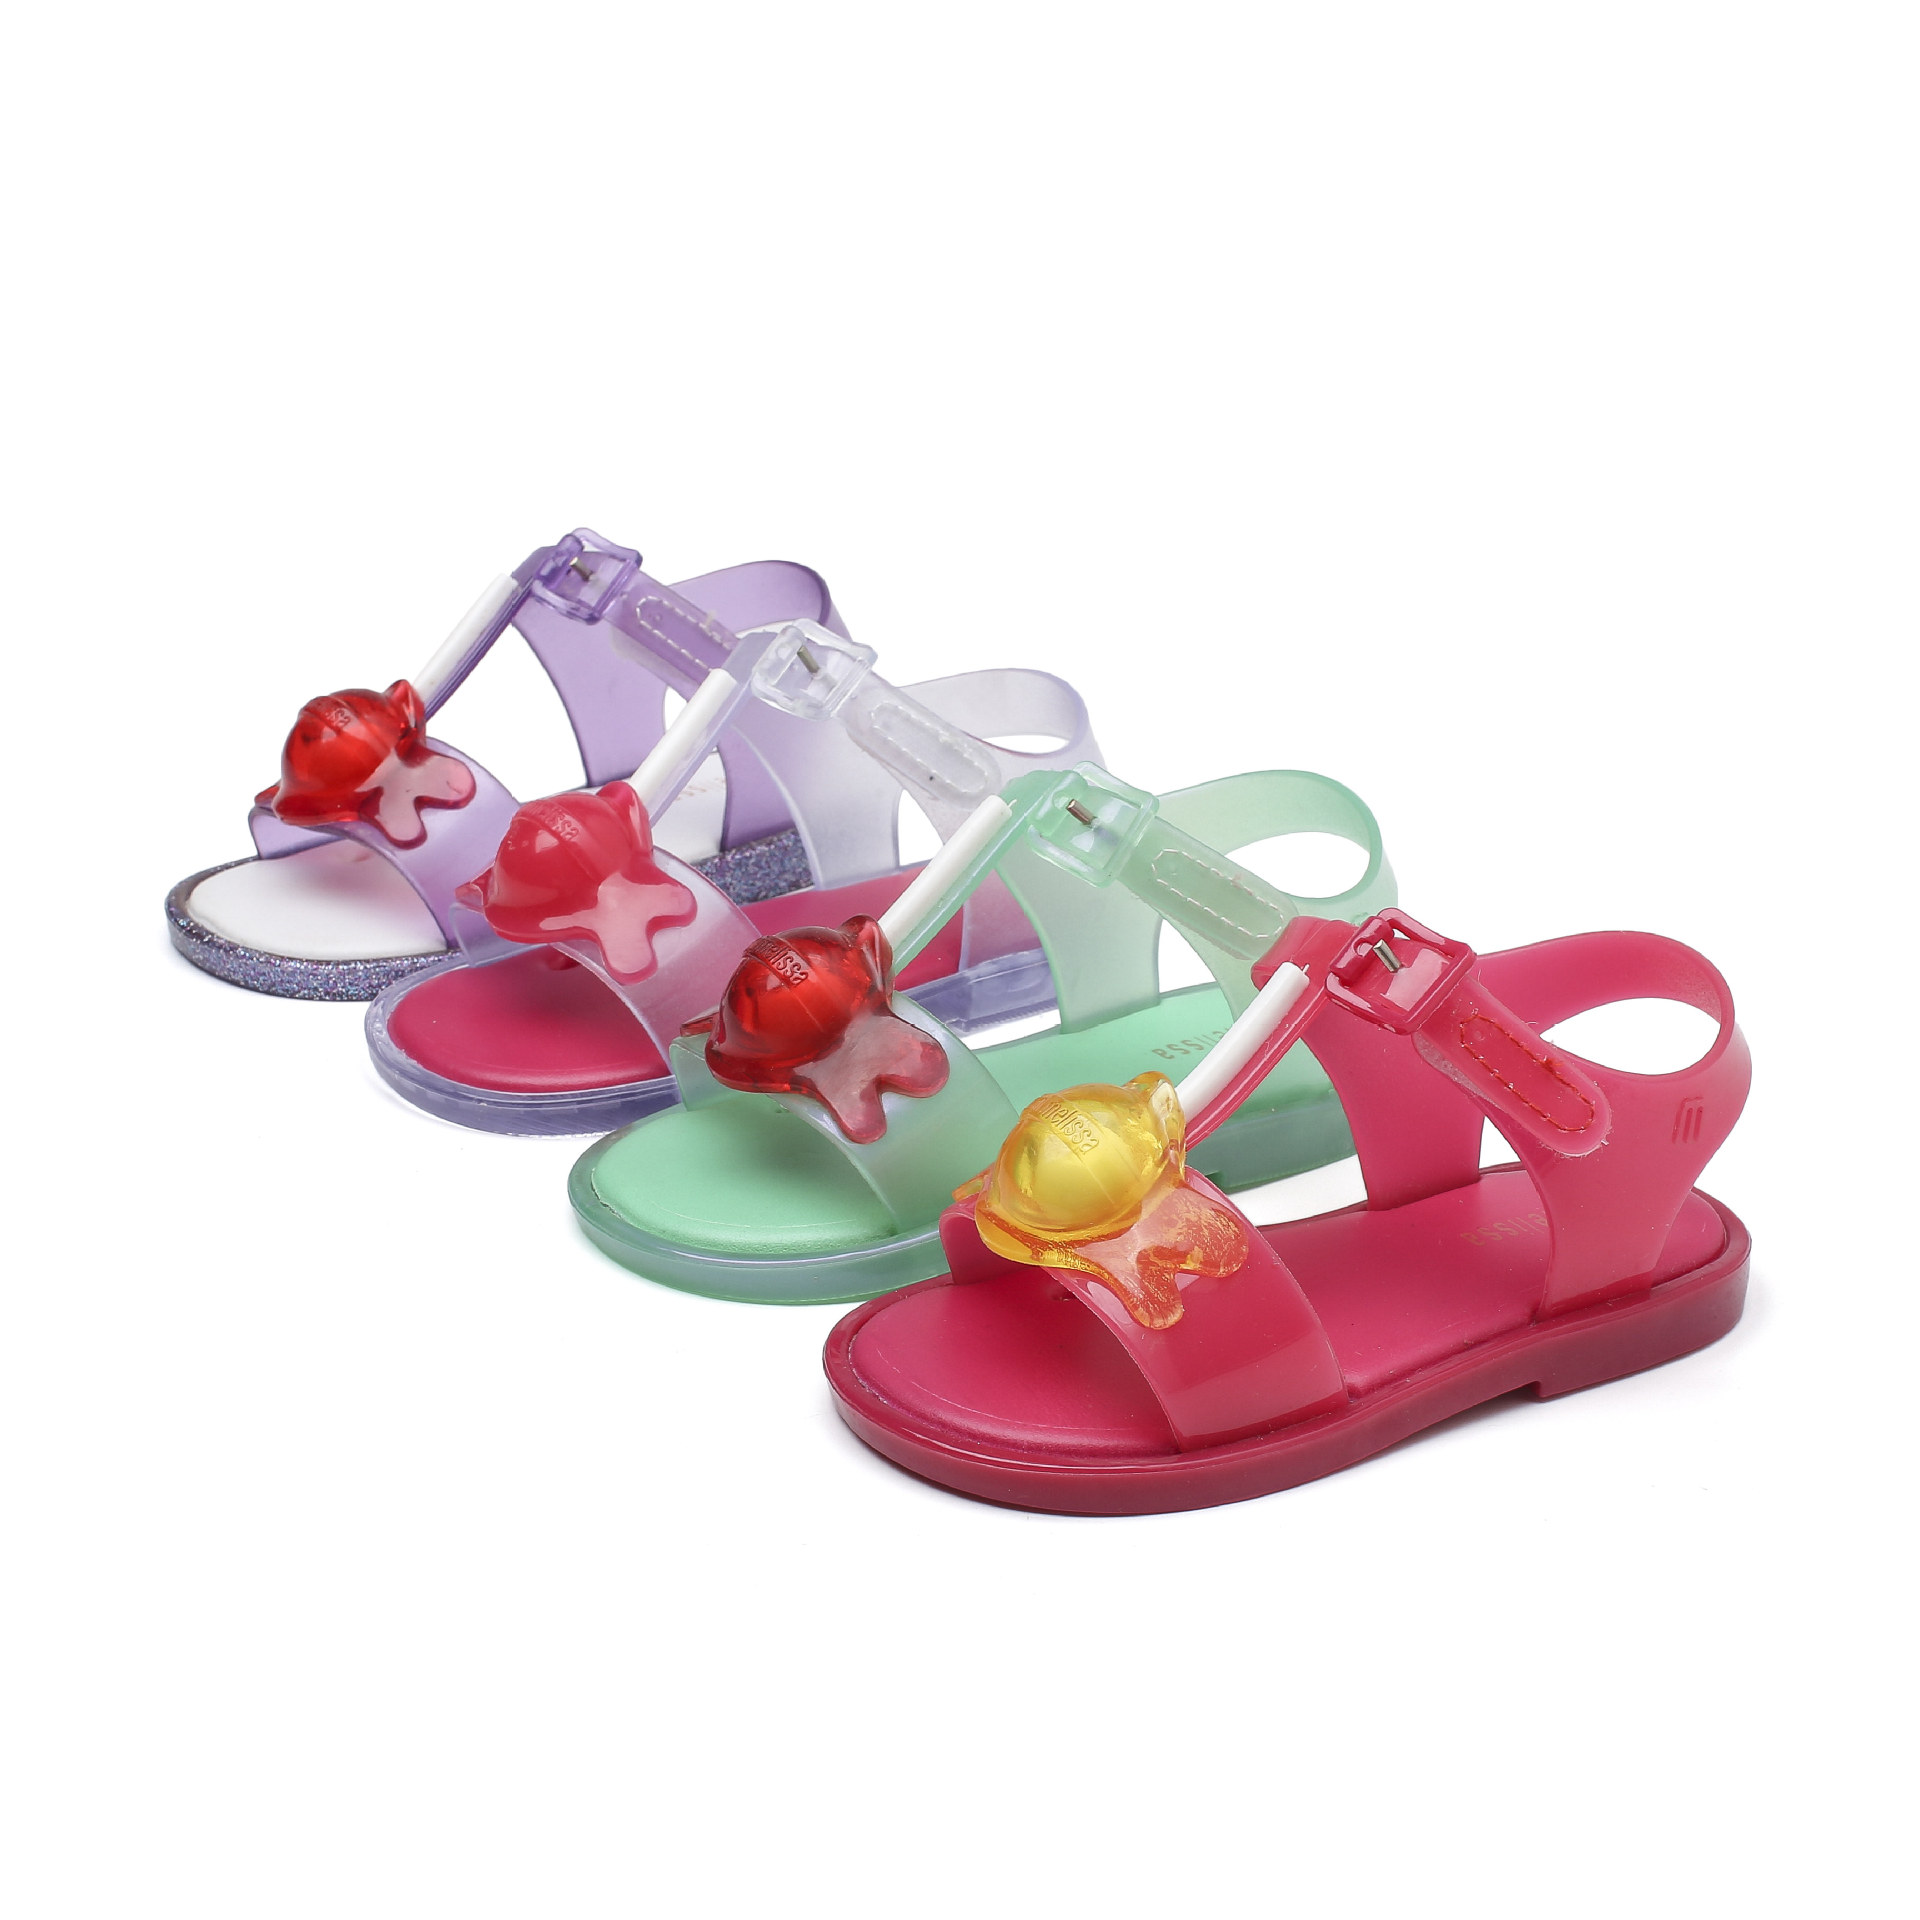 Mini Melissa Lollipop Girl Sandals New Original Girl Jelly Shoes Kids Sandals Children Beach Non-slip Toddlder Candy ShoeSH19085